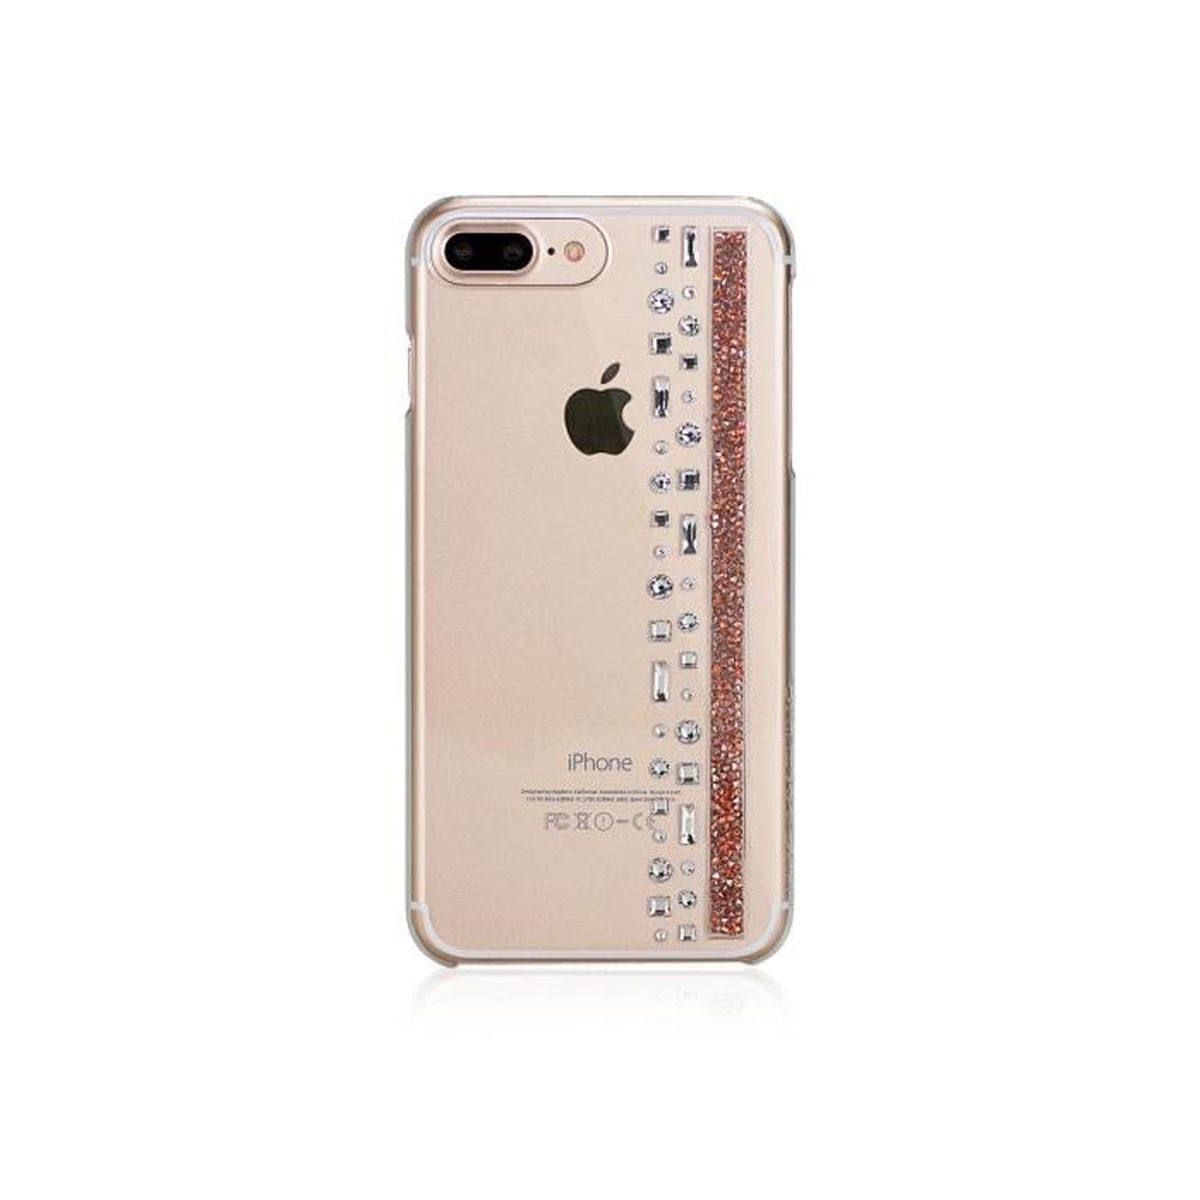 coque iphone 7 plus hermitage rose gold avec cristaux swarovski rose et cristal bling my thing. Black Bedroom Furniture Sets. Home Design Ideas